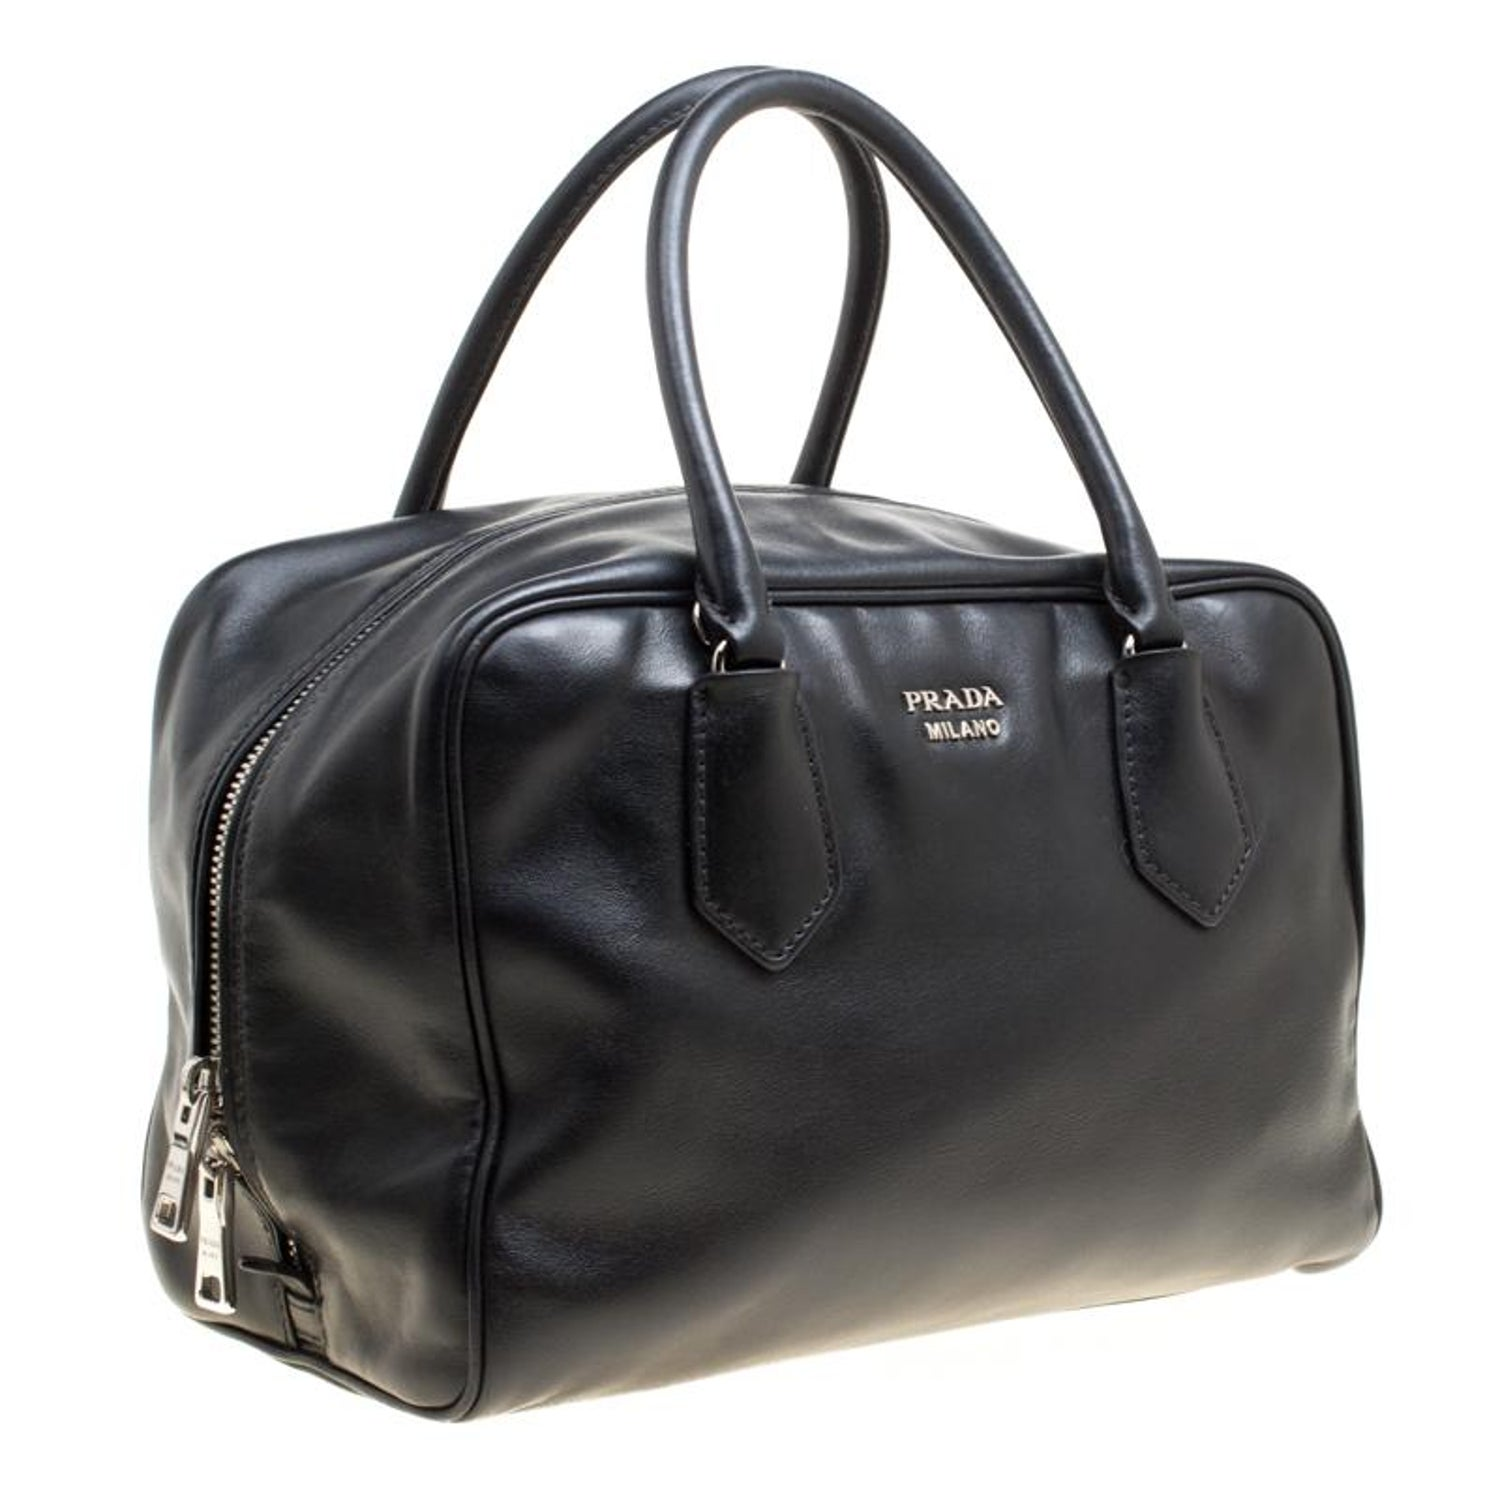 fb467aadfc Prada Black Soft Leather Bauletto Satchel For Sale at 1stdibs